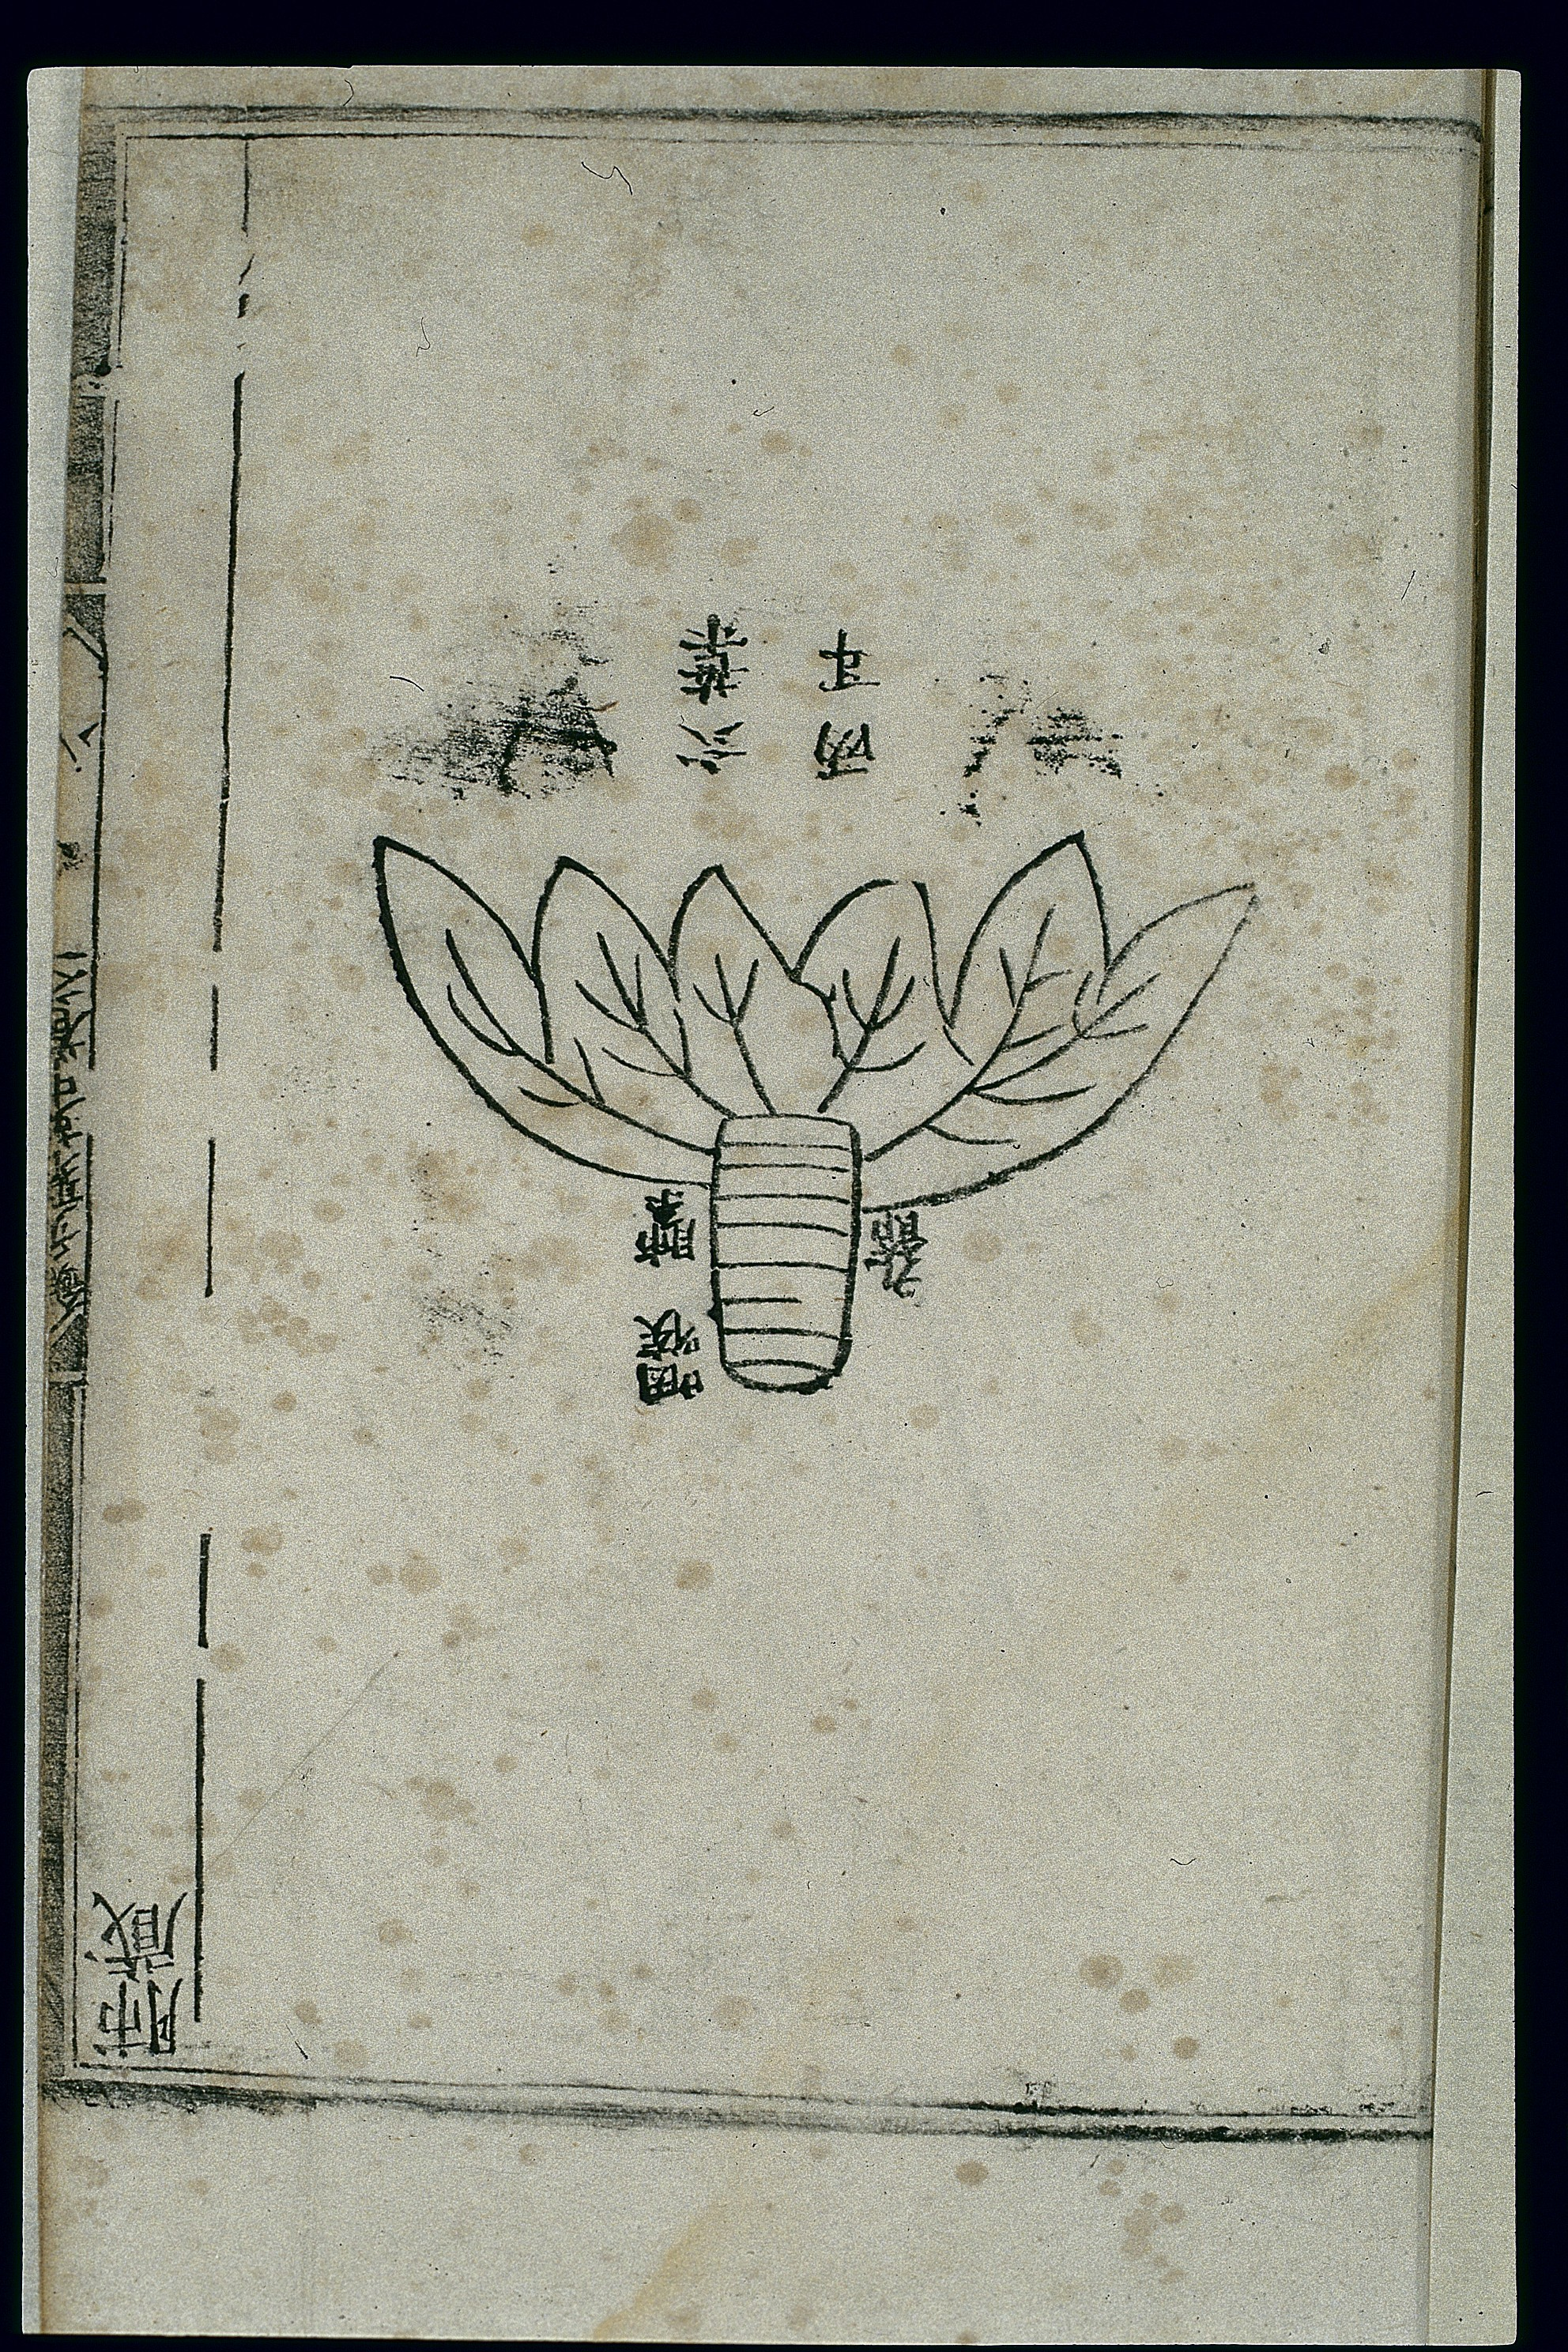 Fileanatomy Of The Lung In Ancient Chinese Medicine Woodcut